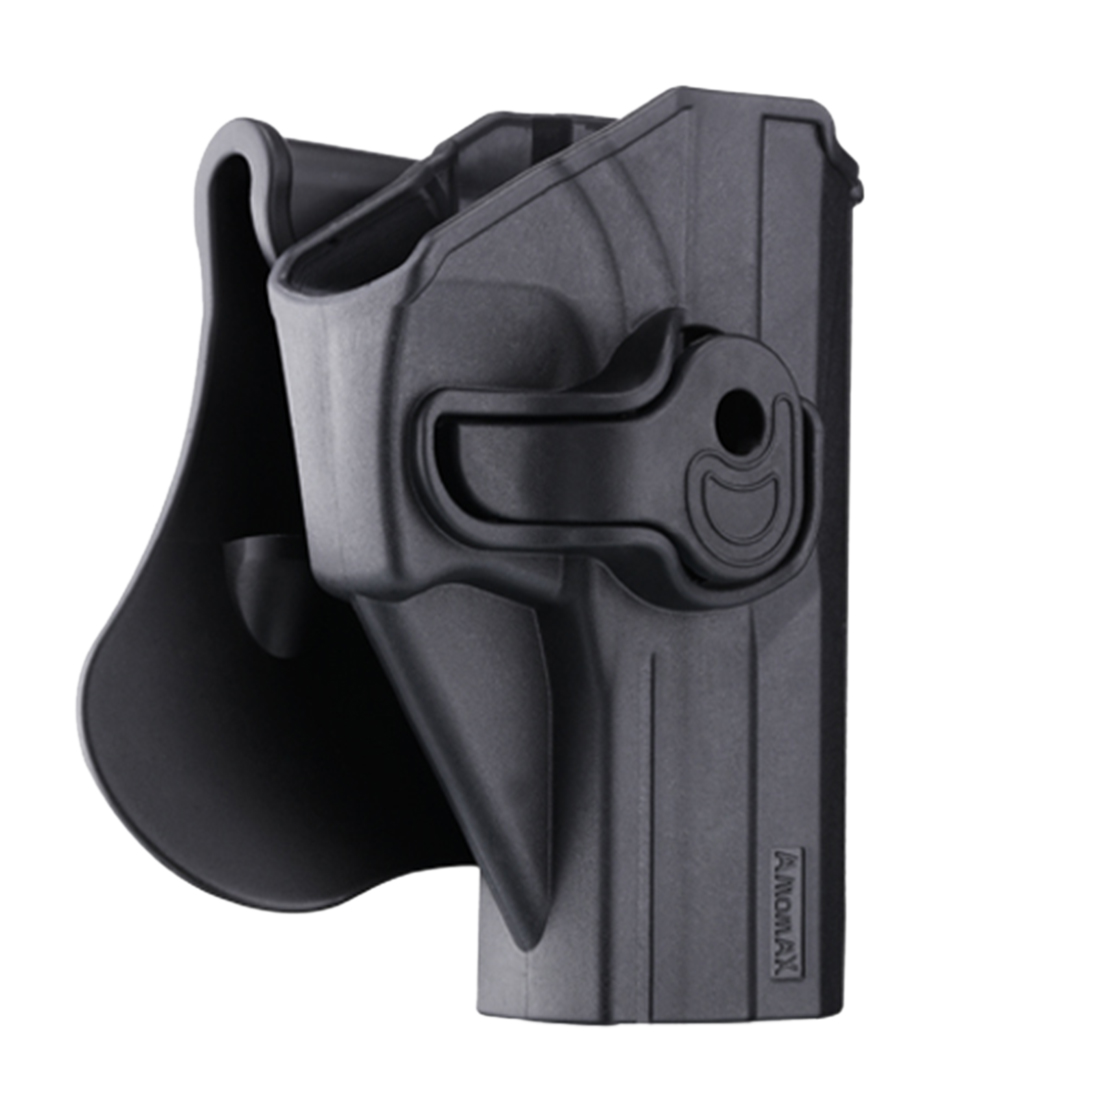 Amomax Adjustable Tactical Hunting Holster for KWA/Umarex USP Full Size and USP Compact Airsoft Outdoor Shooting - Right-handed